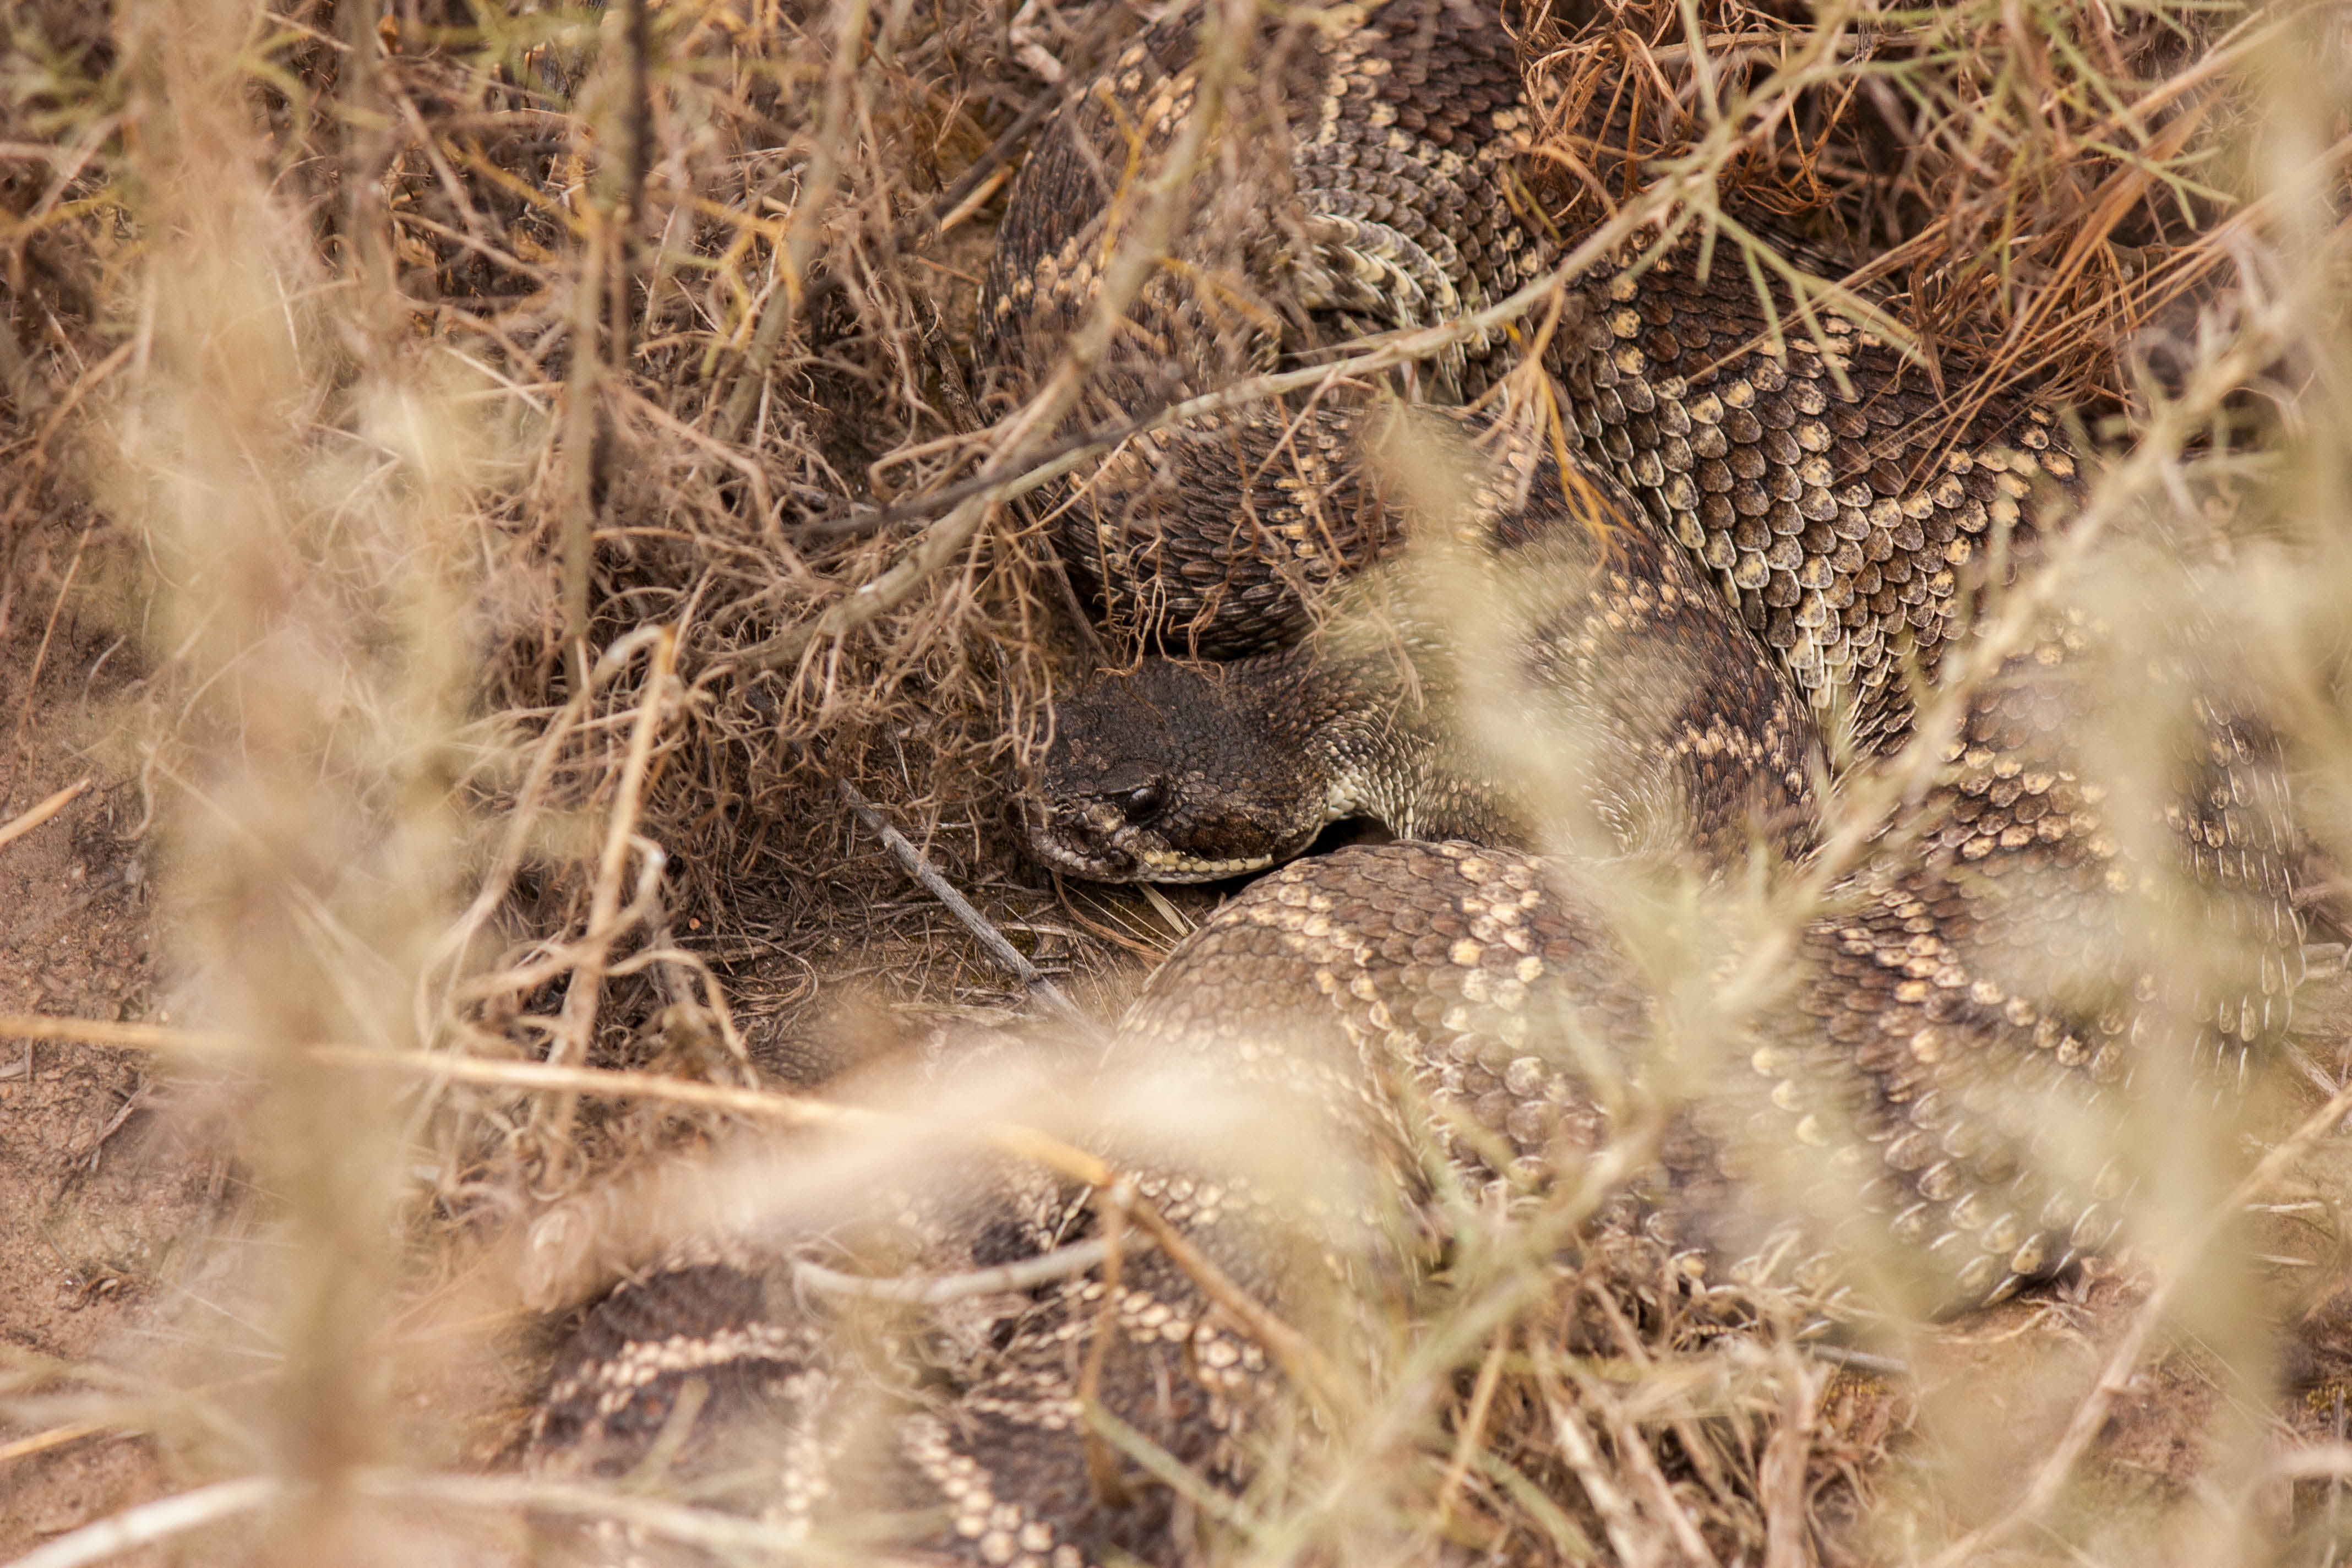 This snake is an expert at camouflage